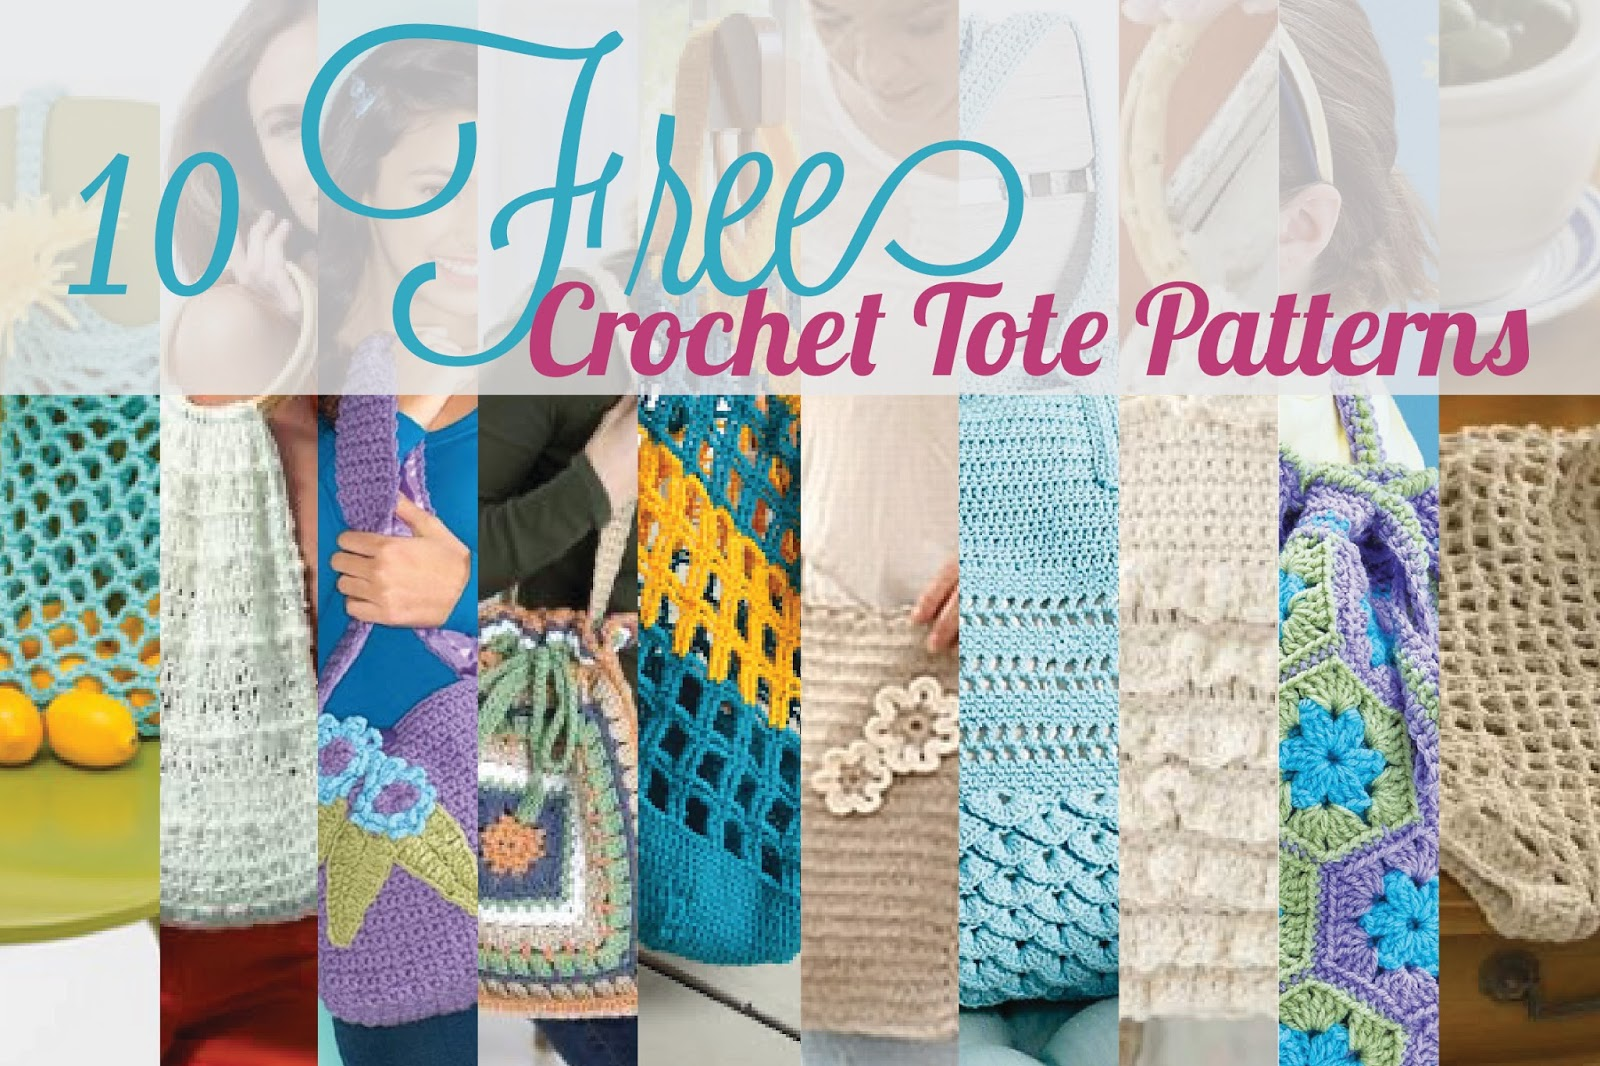 Free Crochet Patterns For Bags And Totes : Cottontail Crochet: 10 Free Crochet Tote Patterns